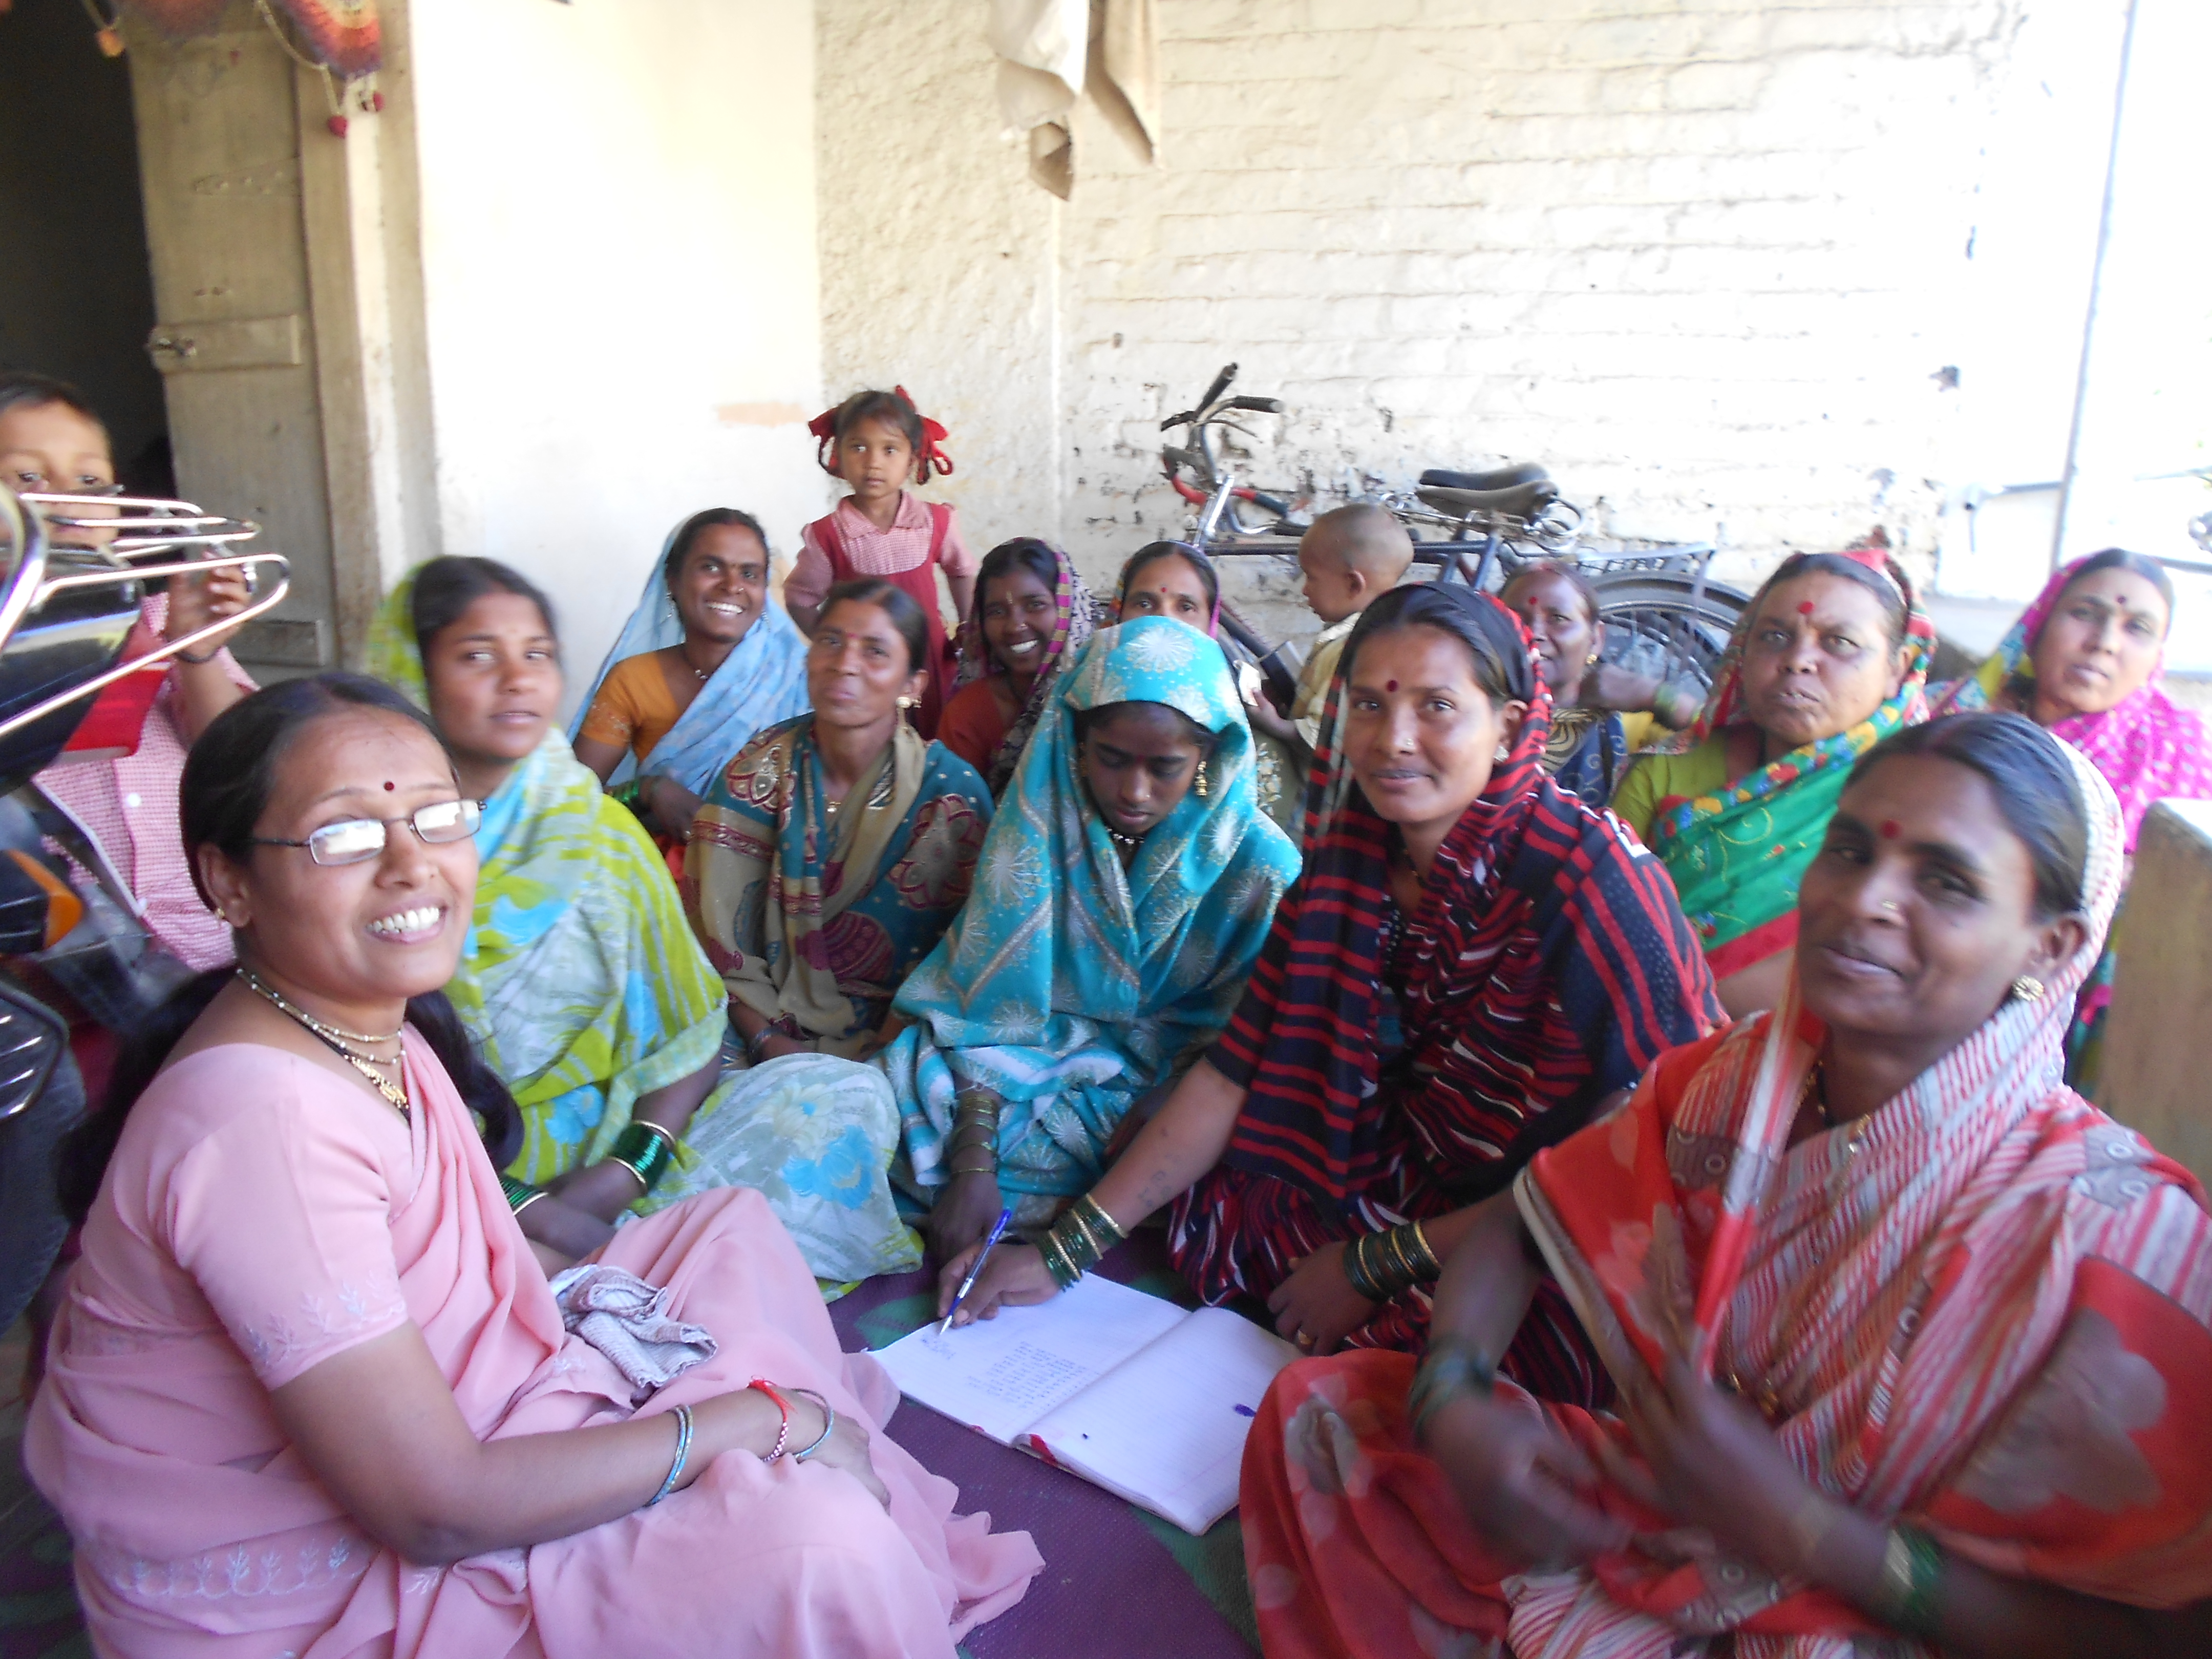 thesis on self help groups in india Self-help groups in india: empowering rural women and eradicating poverty thesis submitted in partial fulfilment of the requirements for the joint academic.